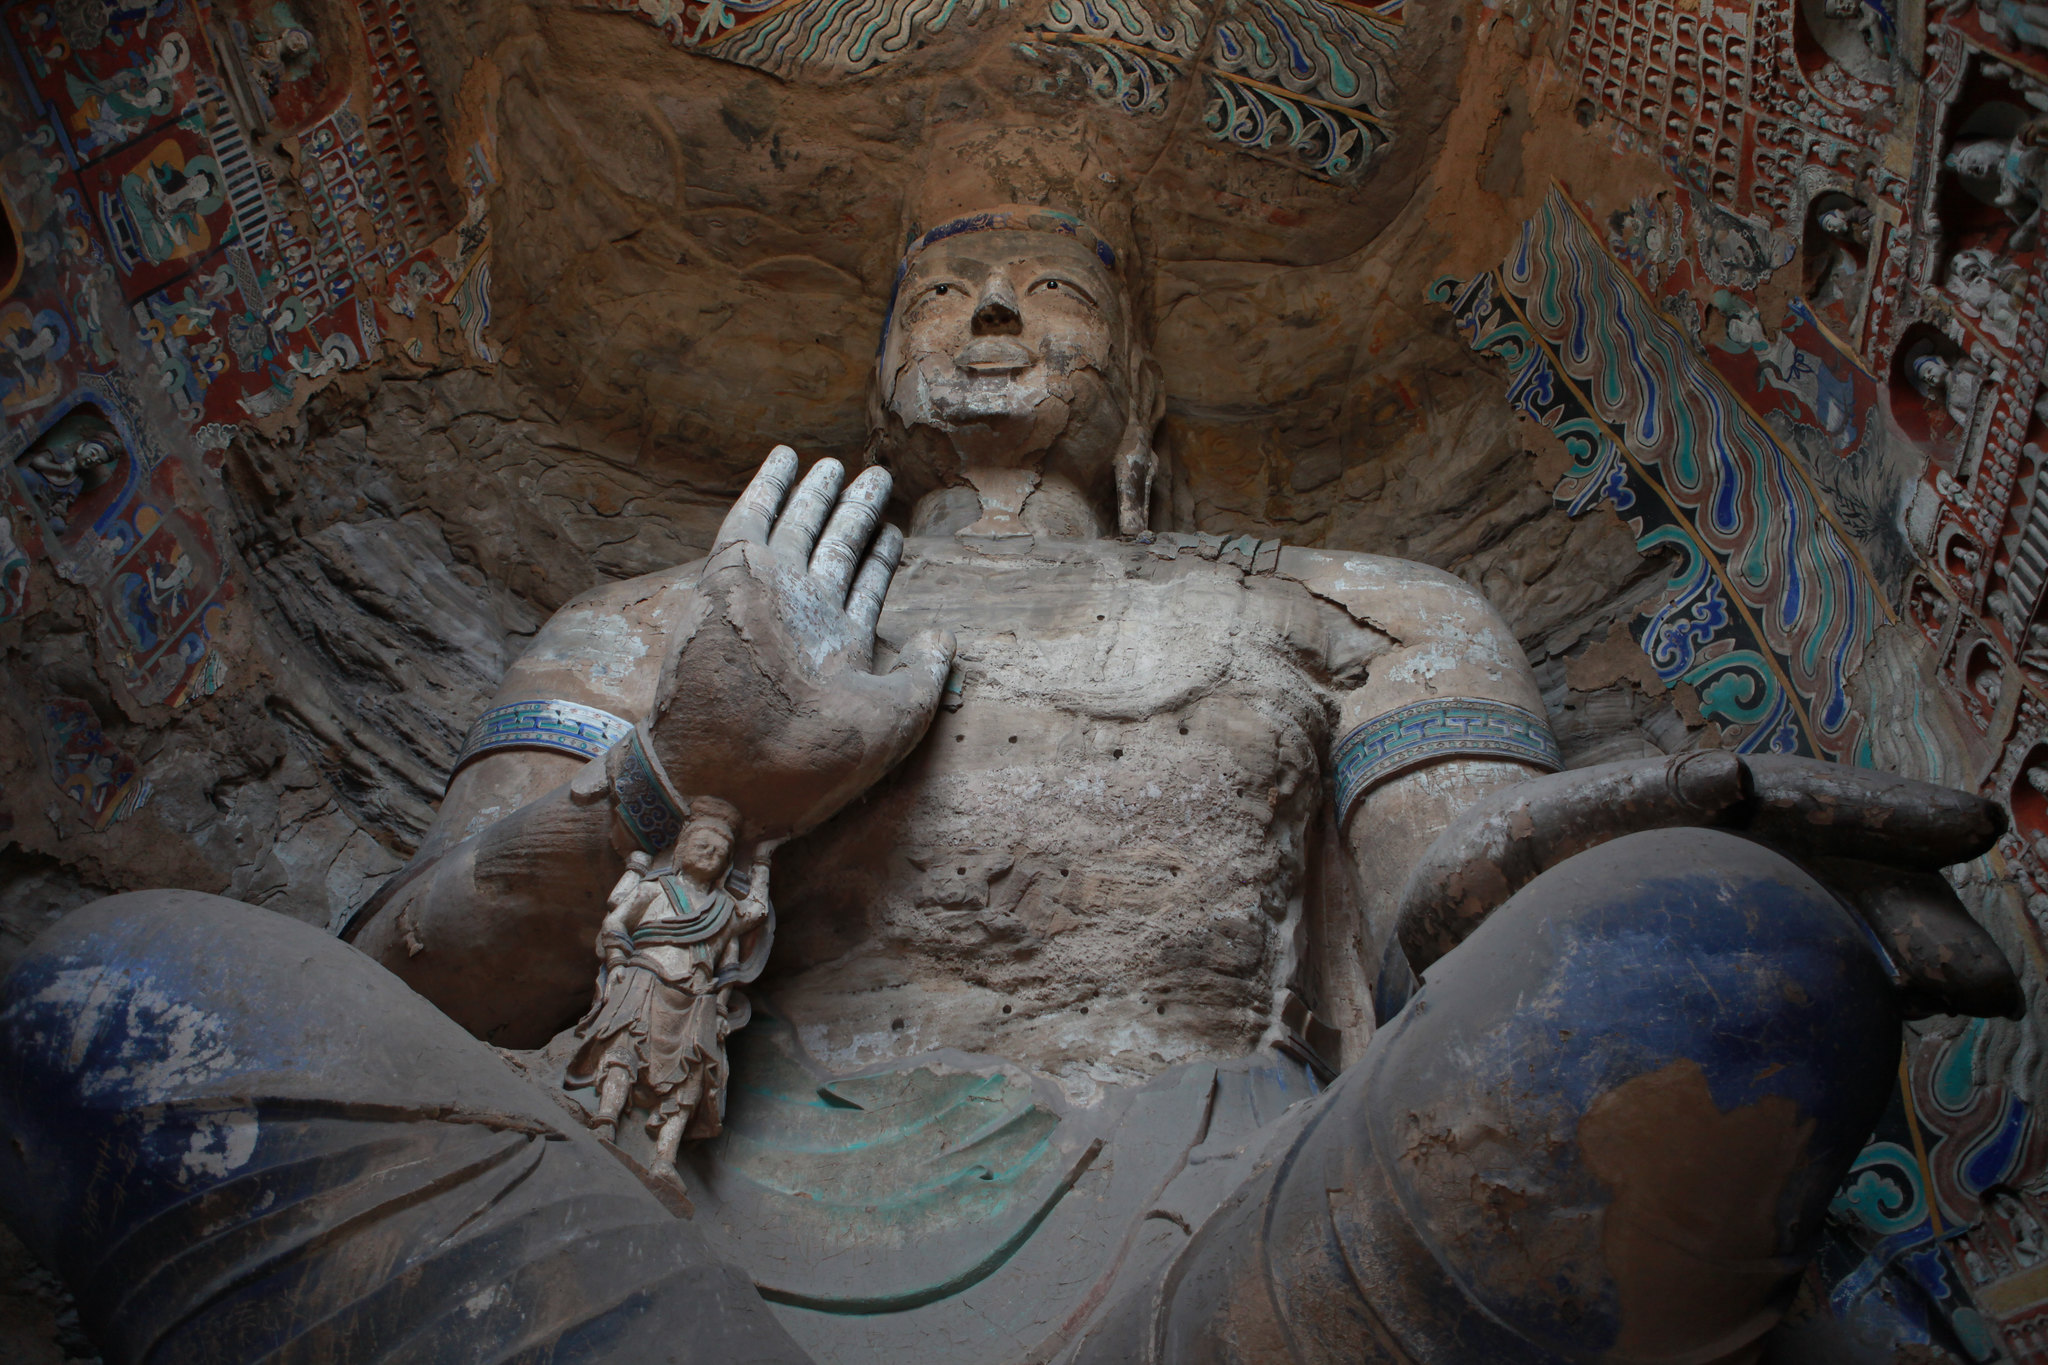 Yungang Caves. Taken on July 31, 2011. Photographer Julie Laurent. Image licensed under CC BY-NC-ND 2.0. Original image location: https://www.flickr.com/photos/julielaurent/6033941621/in/faves-154263974@N03/.